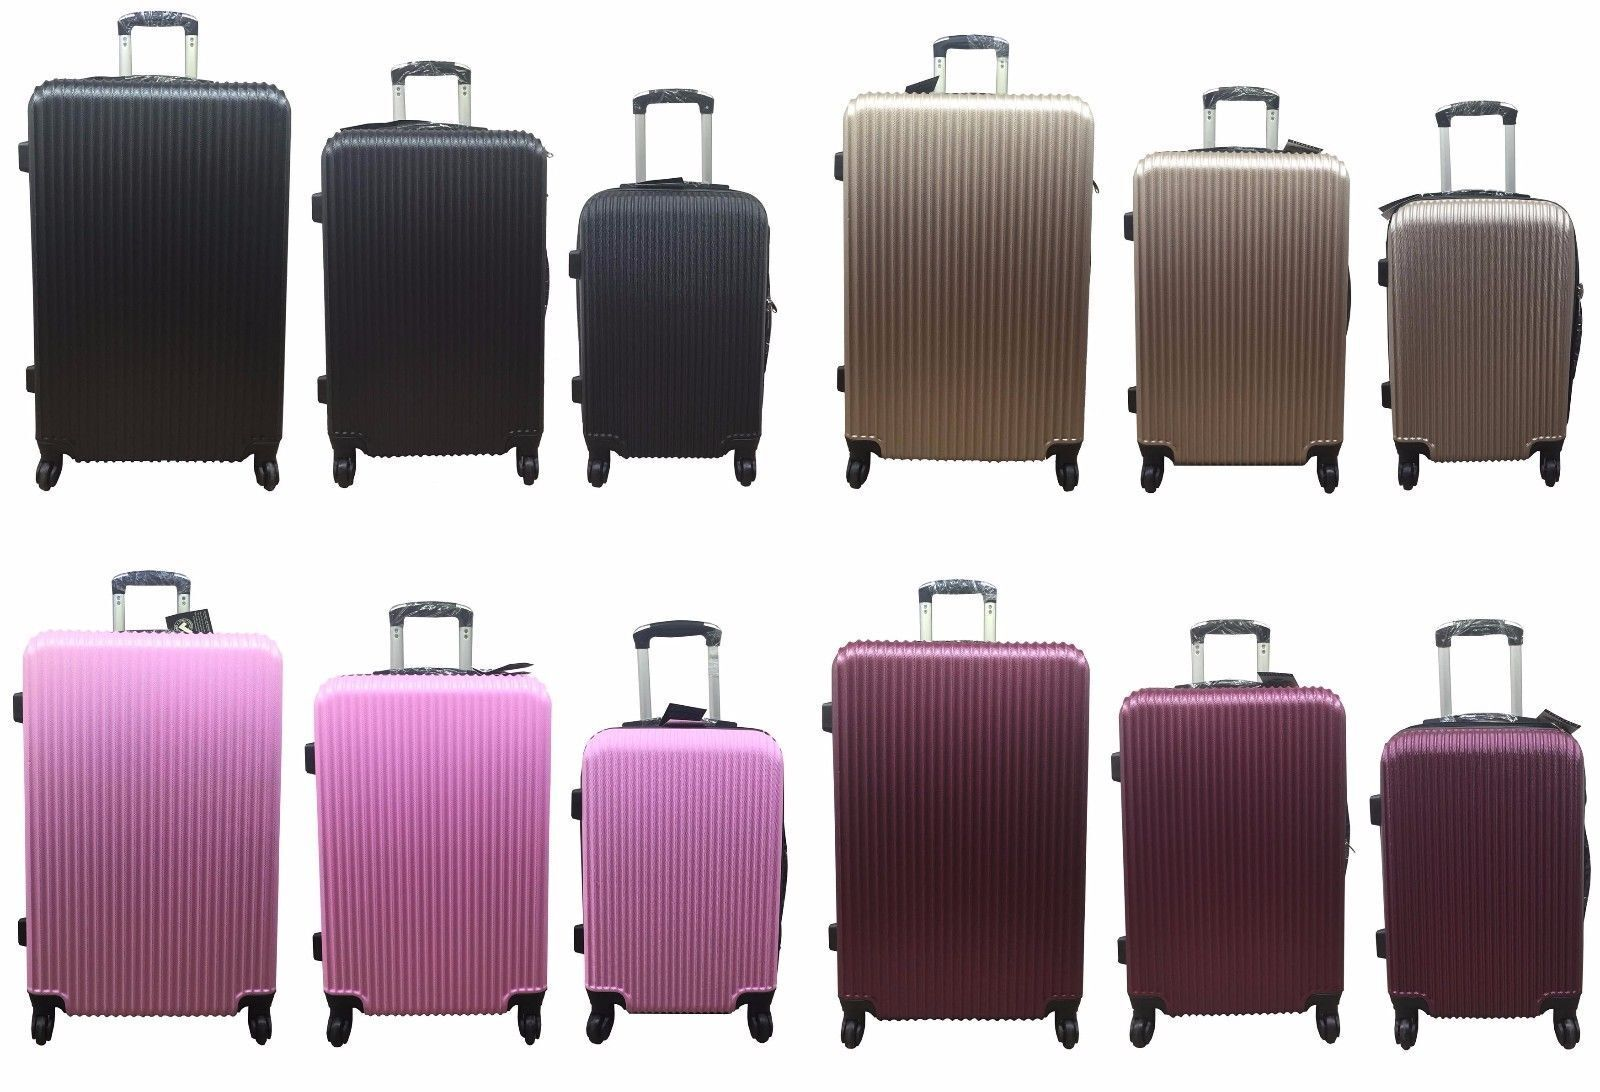 Haute Qualité 4 Roues Spinner Valise PC Hard Hard Hard Case Bagage Valise trolley 4 Couleur 5a3954